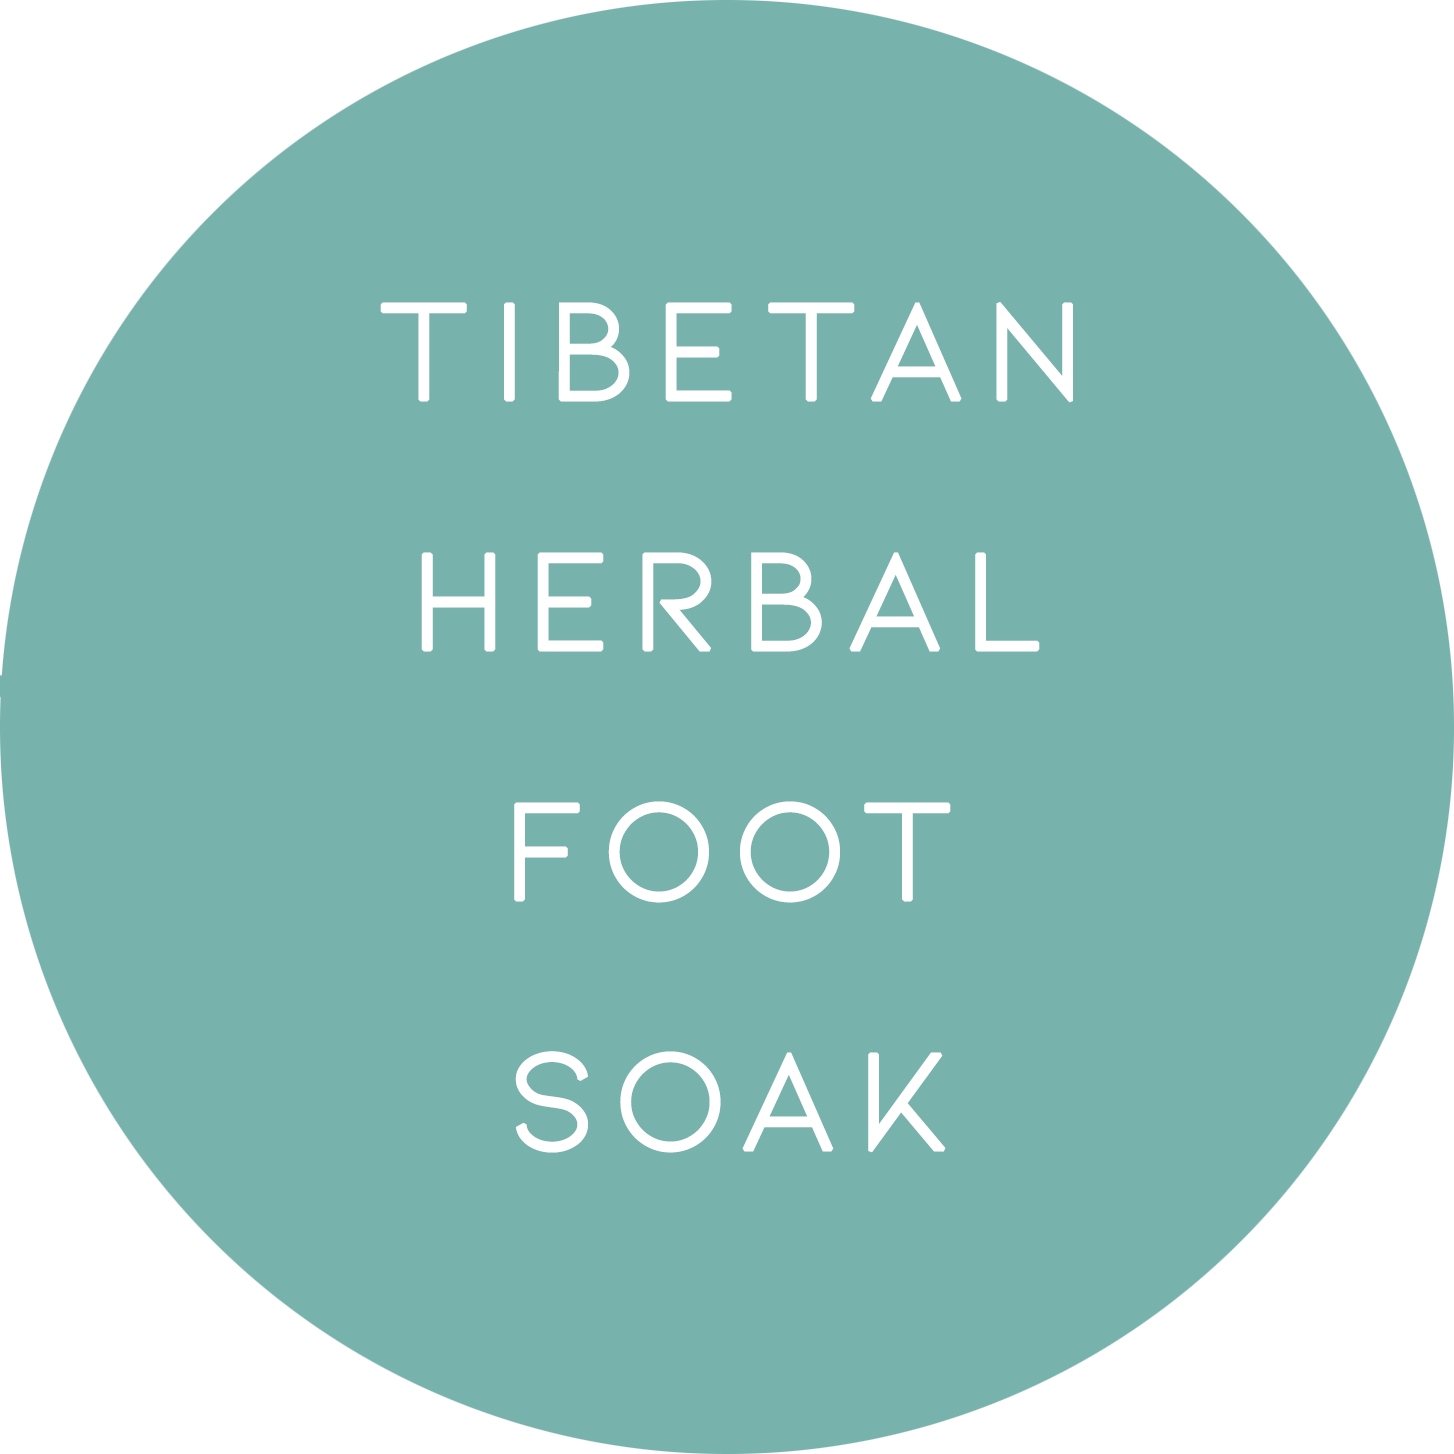 Tibetan herbal foot soak icon.png